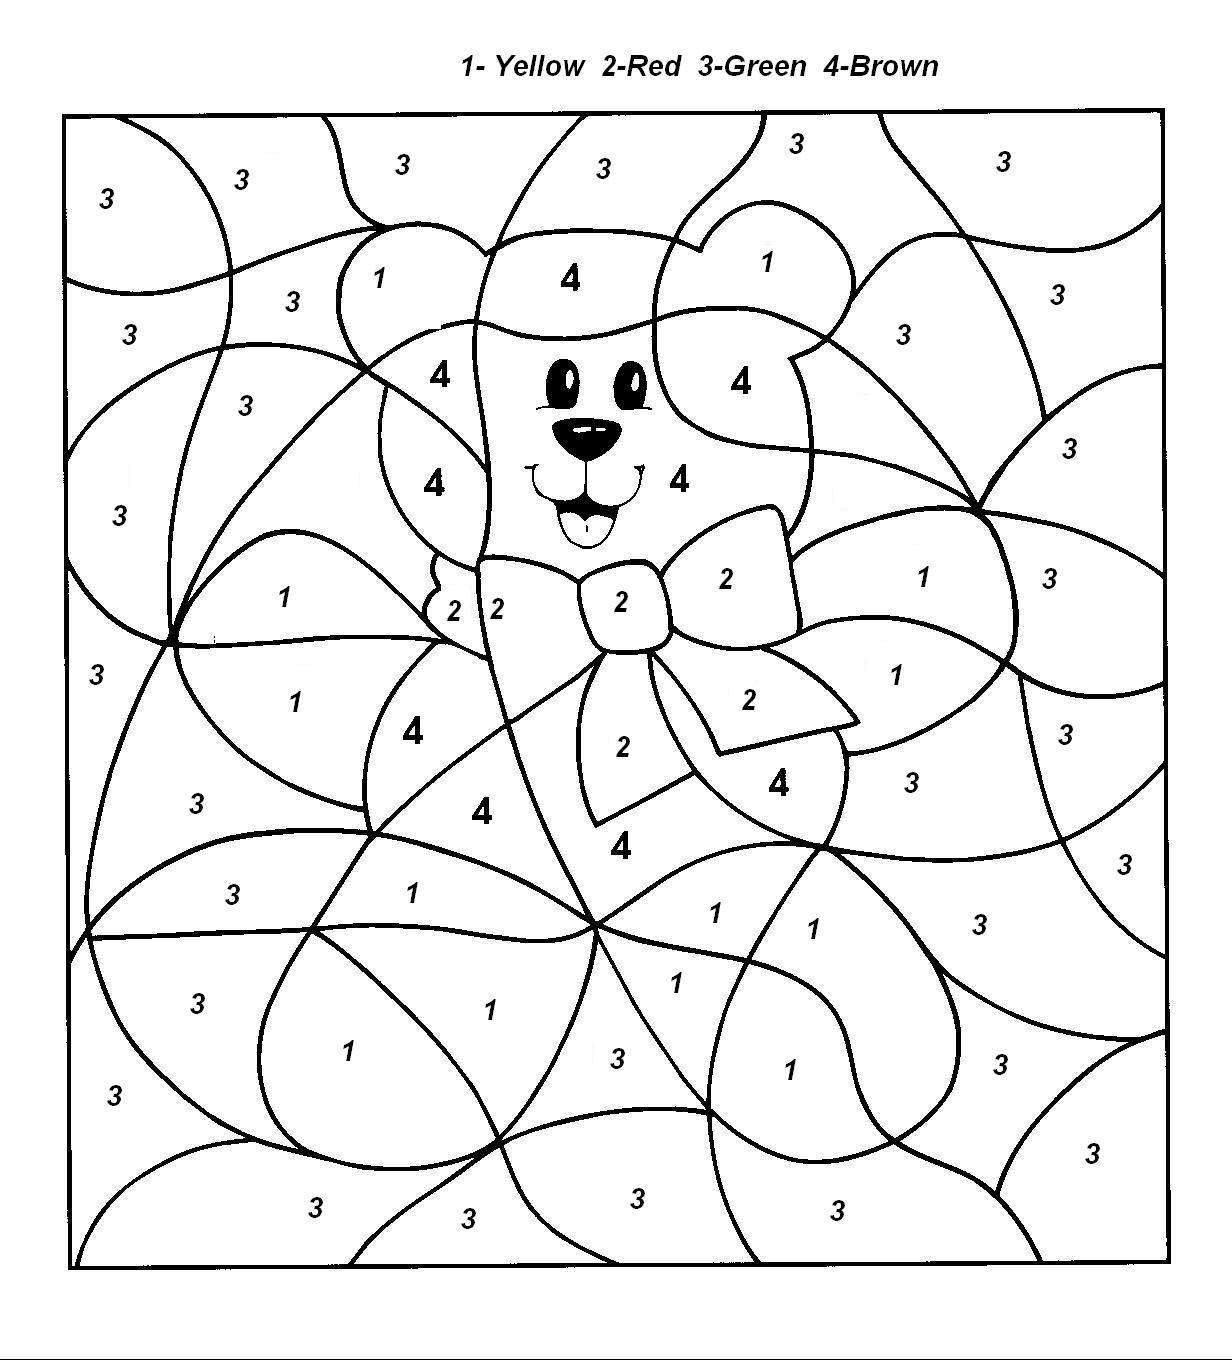 coloring by number coloring pages color by number coloring pages to download and print for free by coloring coloring number pages